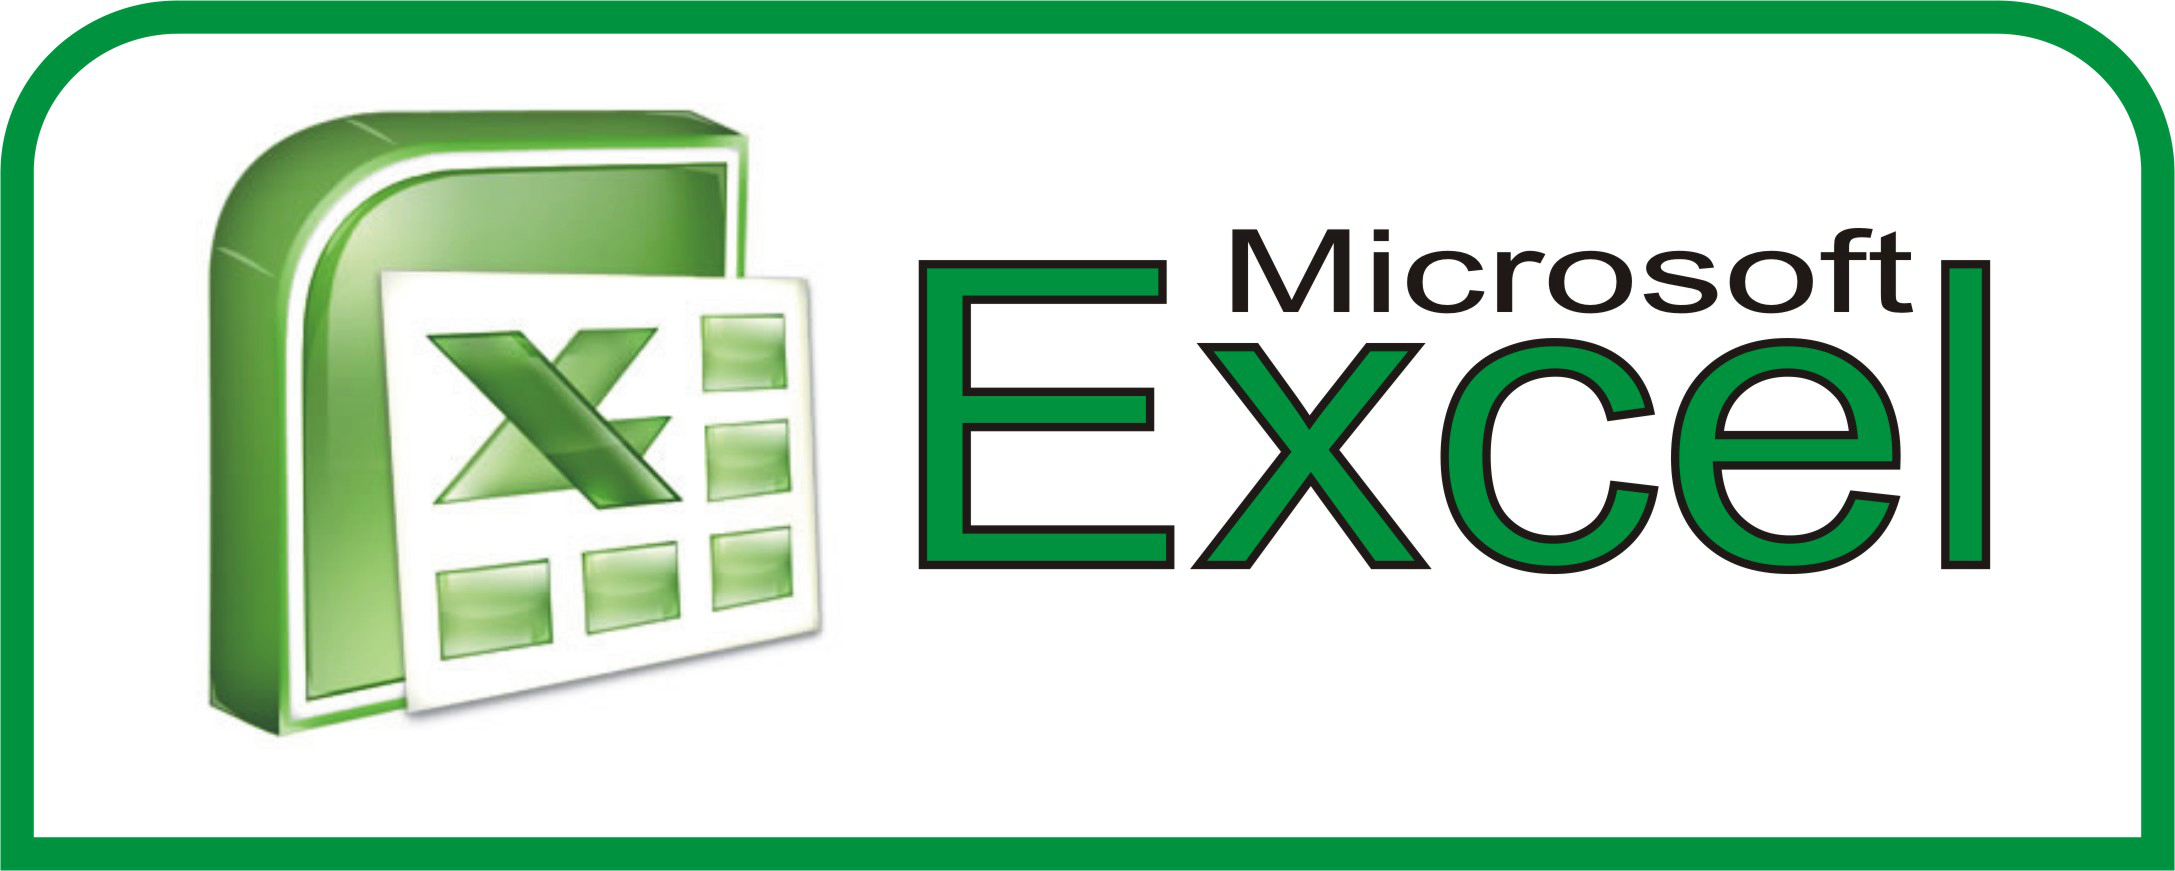 Ediblewildsus  Pretty  Excel Shortcuts You Probably Didnt Know About  Techdissected With Great Microsoft Visual Basic Excel Tutorial Besides Excel Vba Formularc Furthermore Excel How To Freeze Columns With Enchanting Payroll Form Excel Also Microsoft Excel Free Torrent In Addition Microsoft Excel Guide  And Win Loss Chart In Excel As Well As Unhide Worksheet In Excel  Additionally Unload Me Vba Excel From Techdissectedcom With Ediblewildsus  Great  Excel Shortcuts You Probably Didnt Know About  Techdissected With Enchanting Microsoft Visual Basic Excel Tutorial Besides Excel Vba Formularc Furthermore Excel How To Freeze Columns And Pretty Payroll Form Excel Also Microsoft Excel Free Torrent In Addition Microsoft Excel Guide  From Techdissectedcom